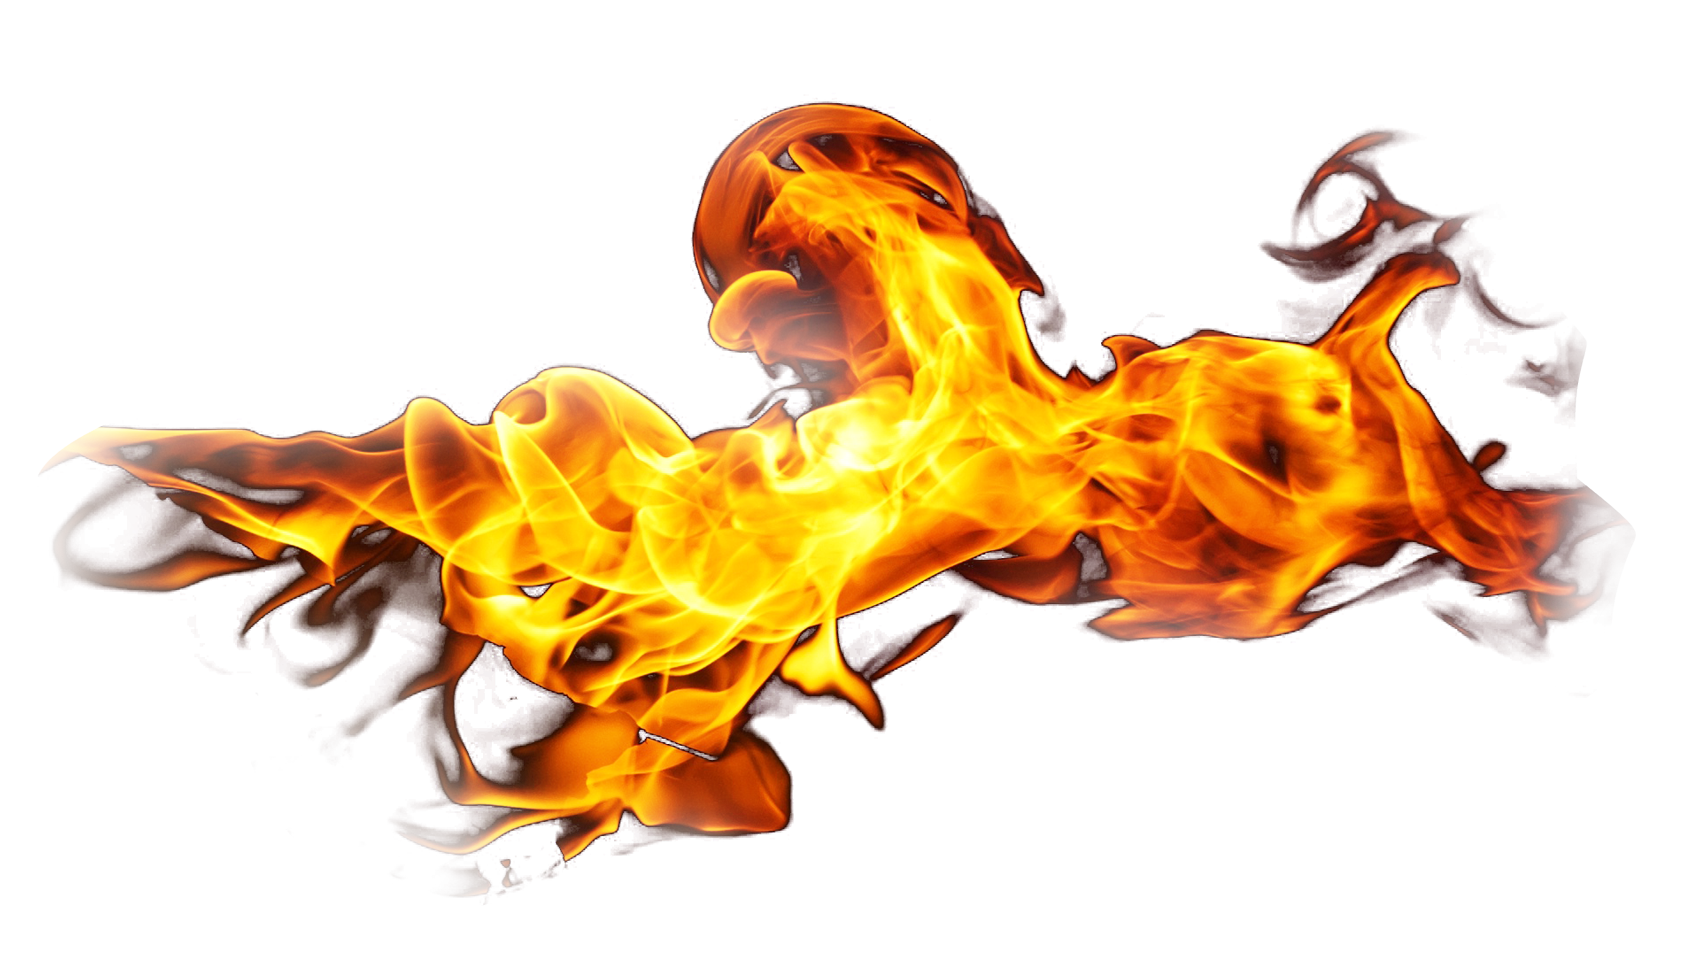 Free icons and backgrounds. Fire png images